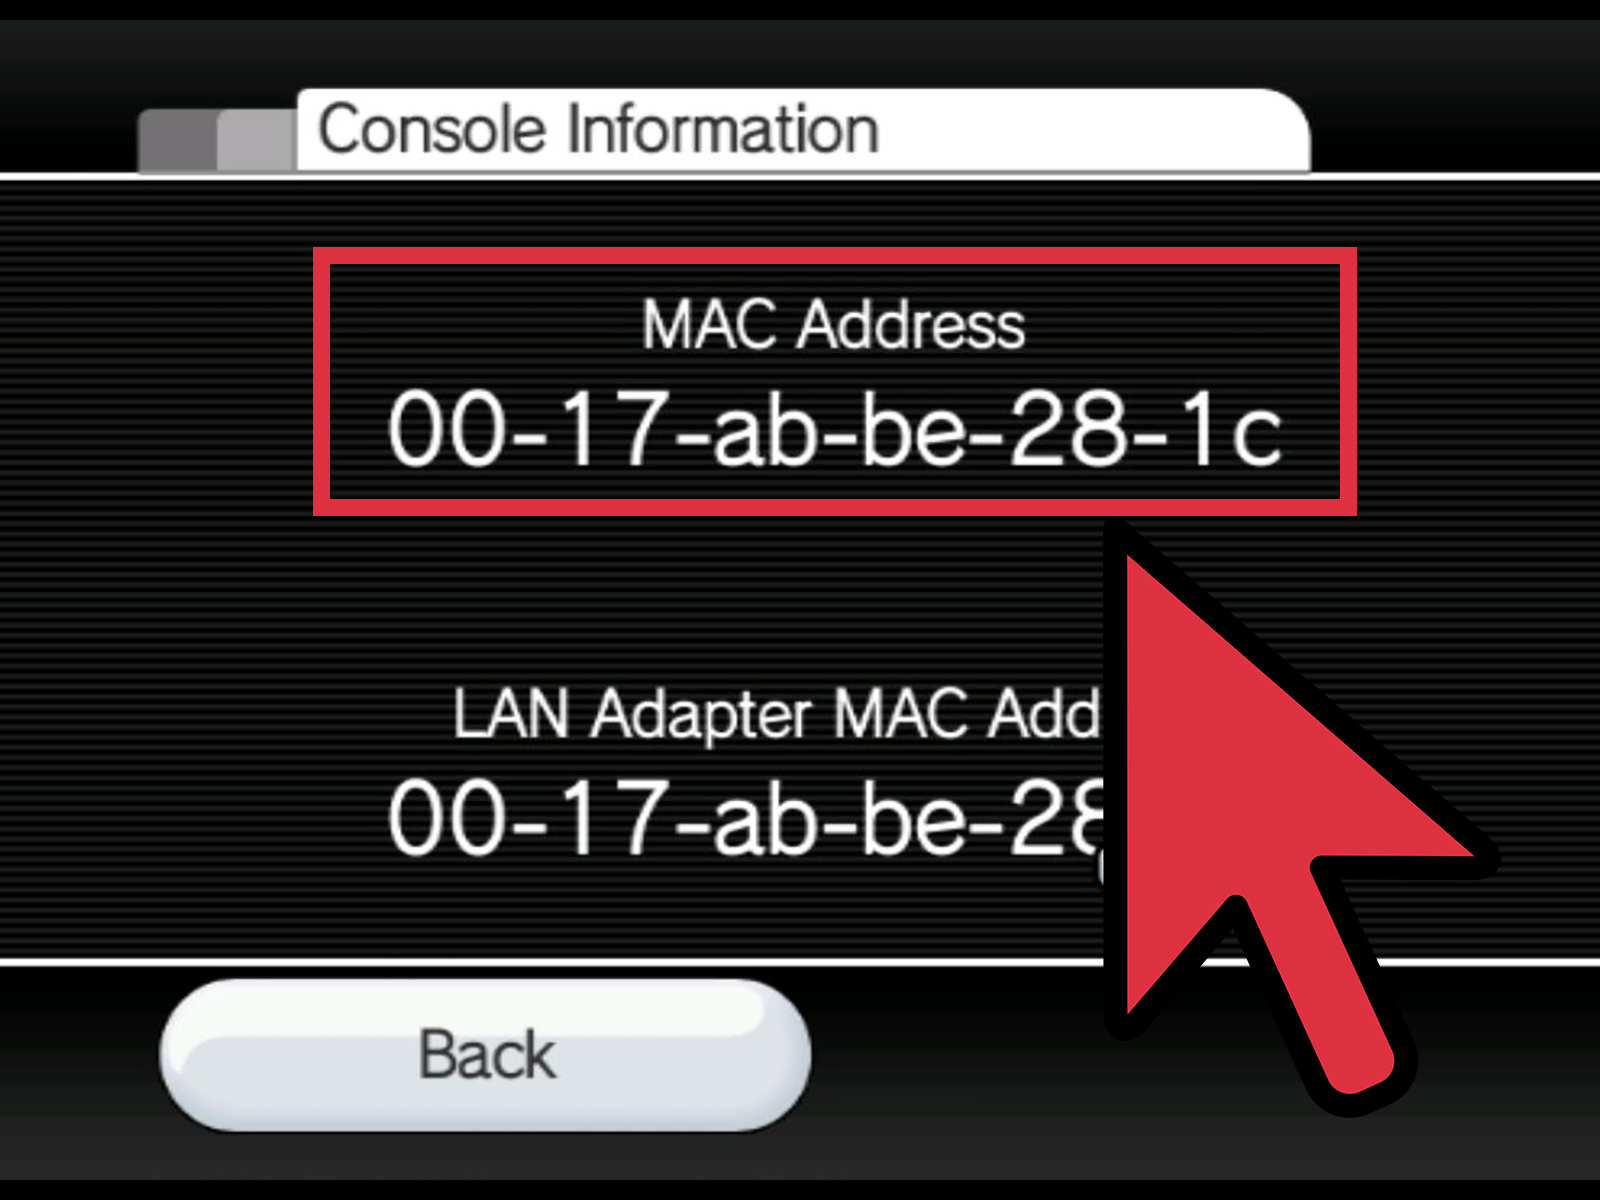 You have to use this MAC Address for Your STB Emulator